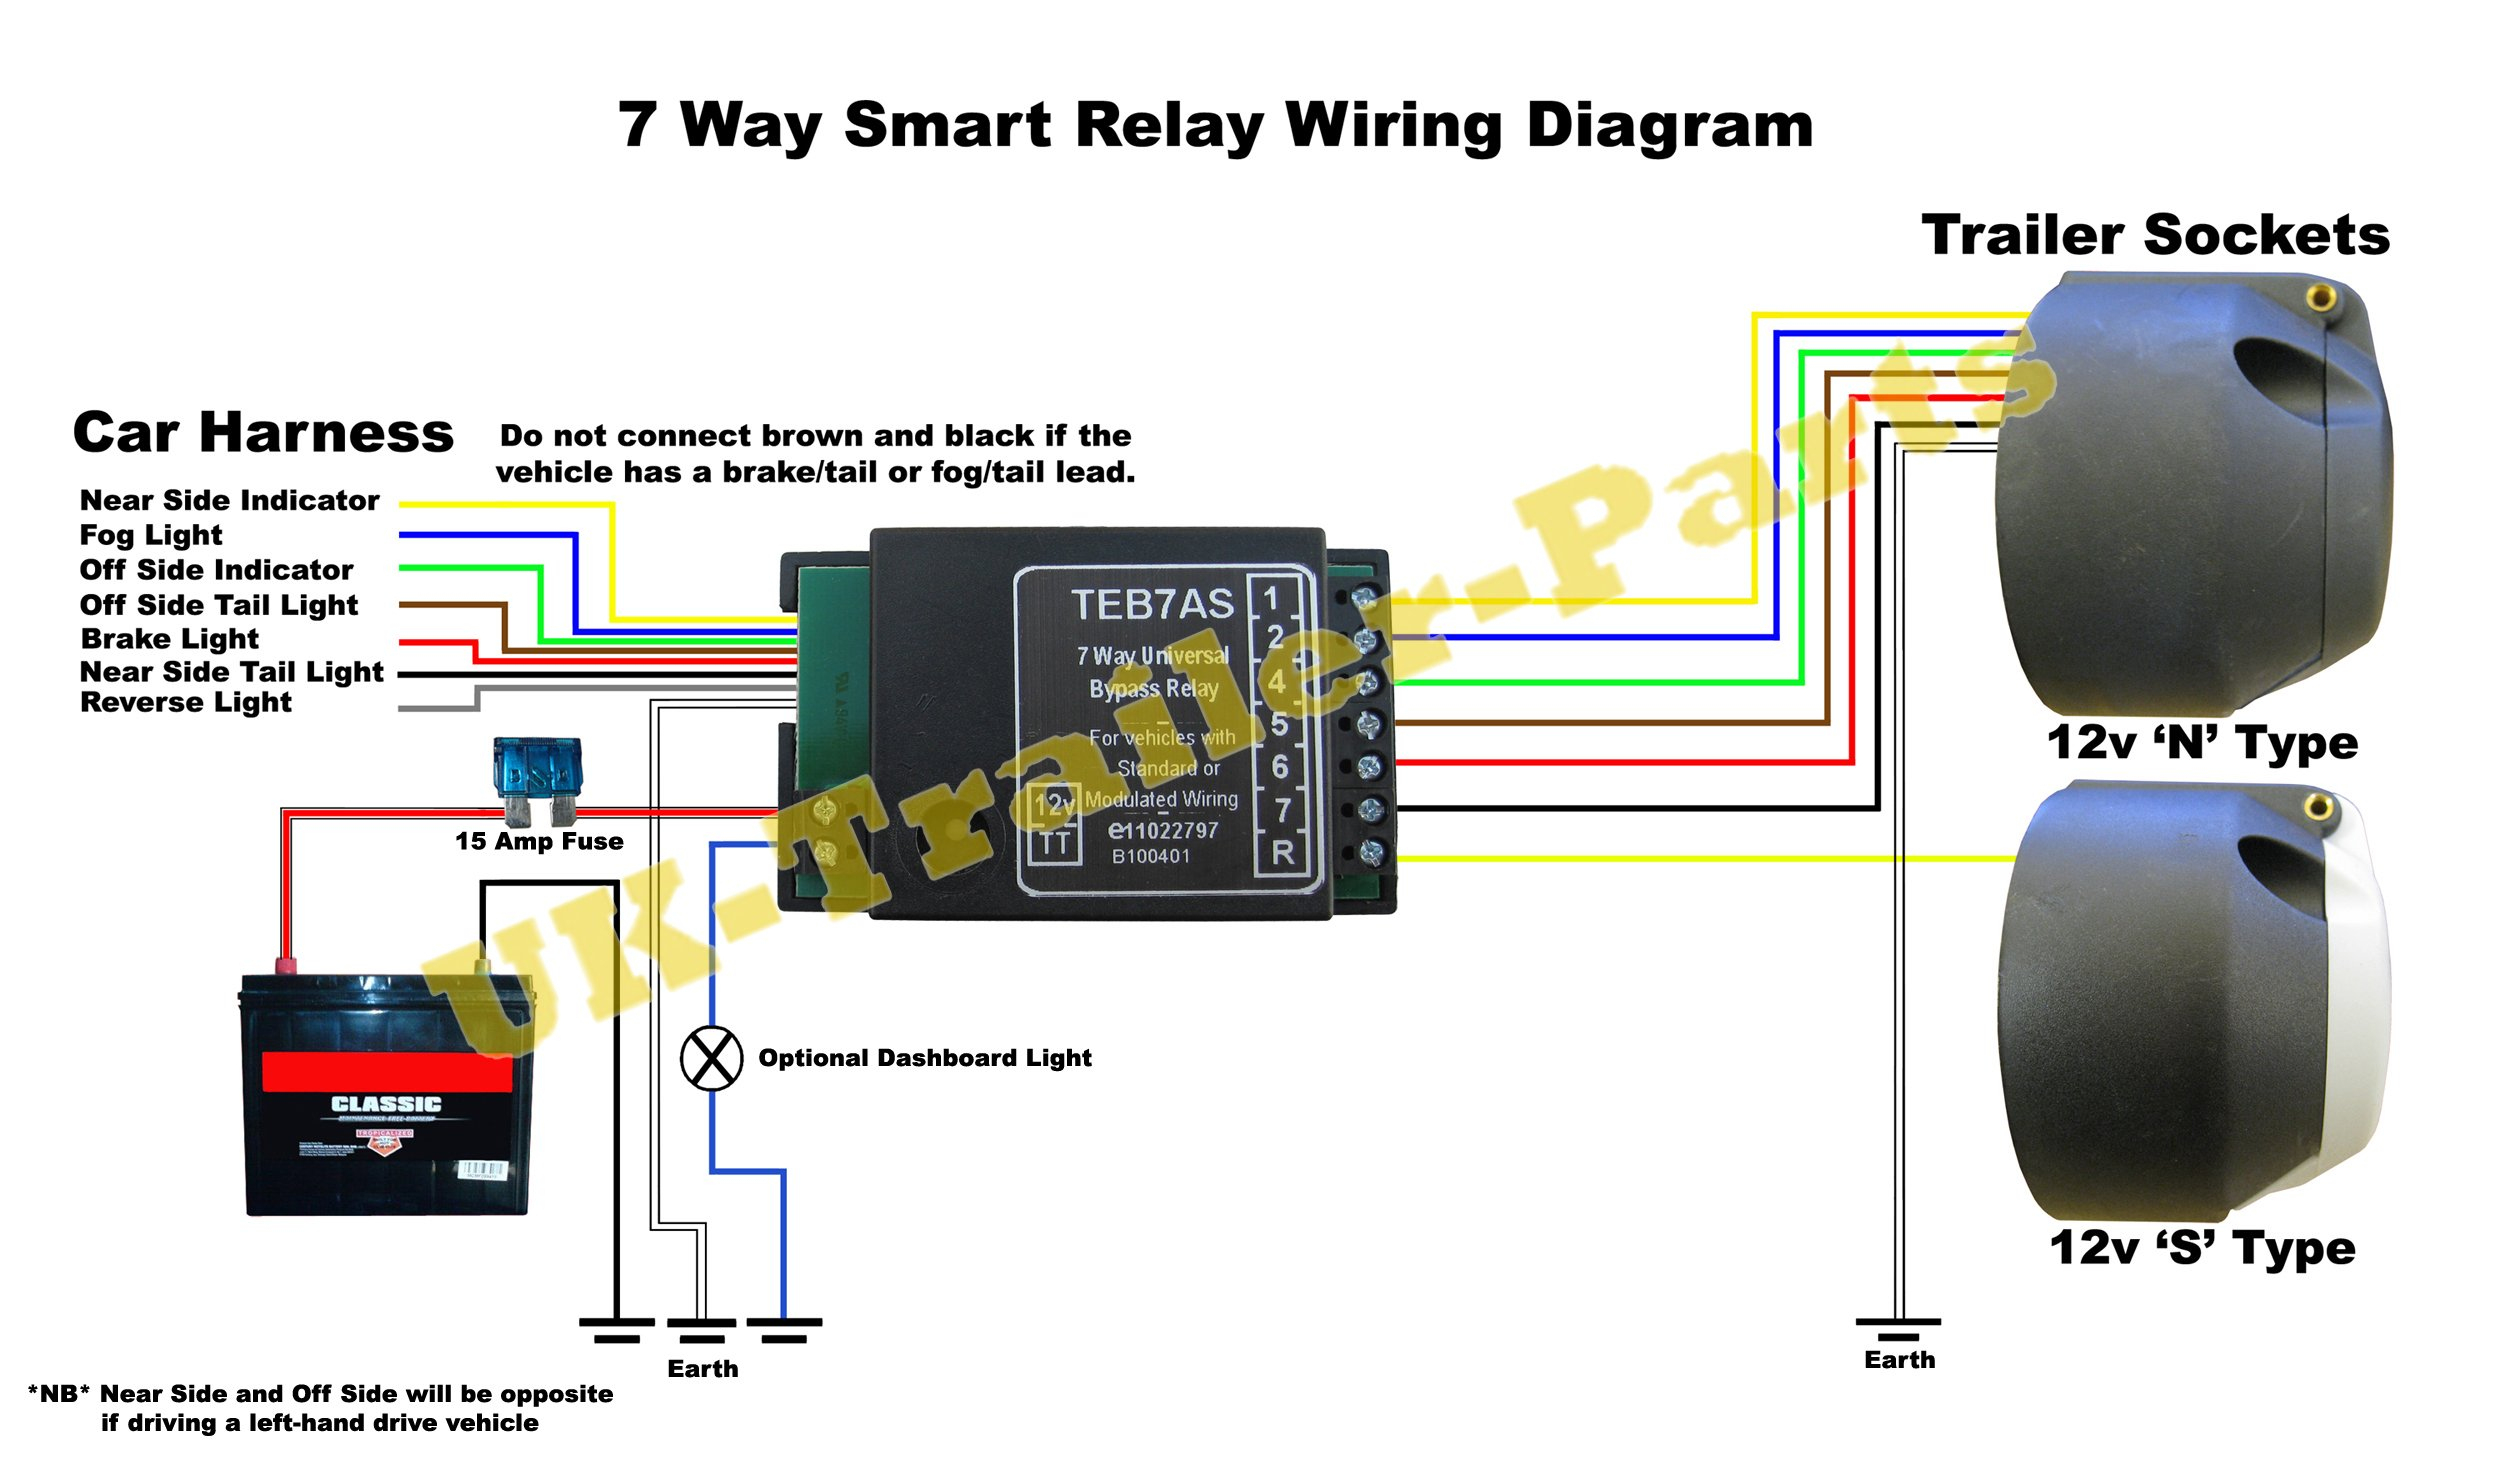 7 Way Universal Bypass Relay Wiring Diagram | Uk-Trailer-Parts - 7 Wire Trailer Wiring Diagram